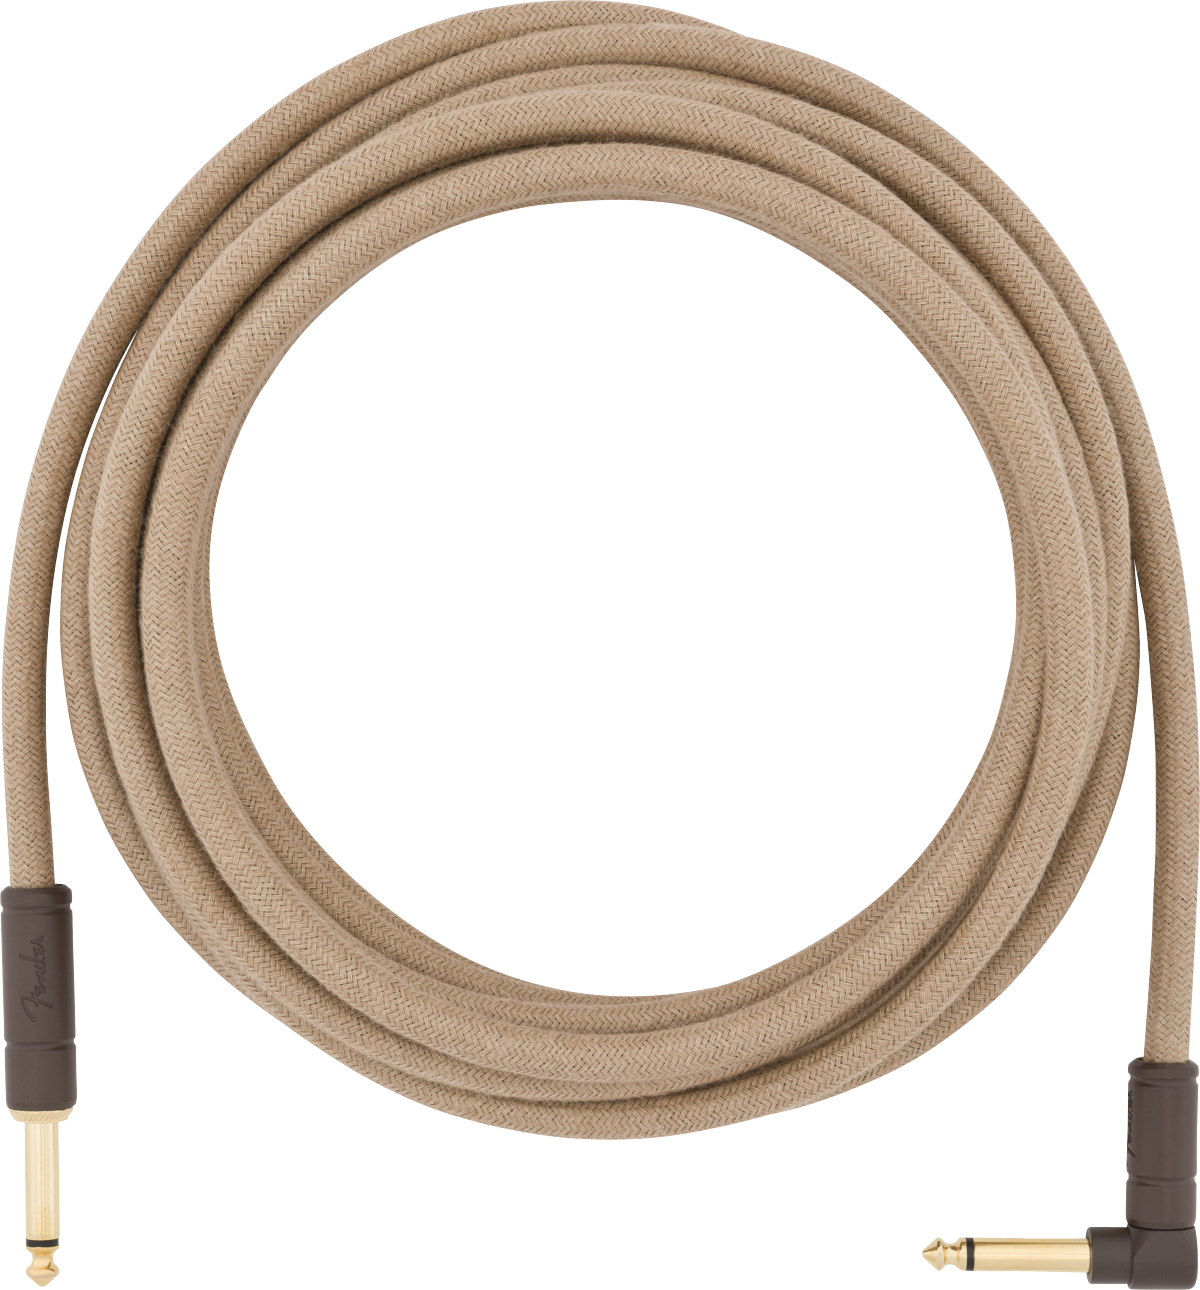 Fender Pure Hemp Instrument Cable - 18.6' Natural